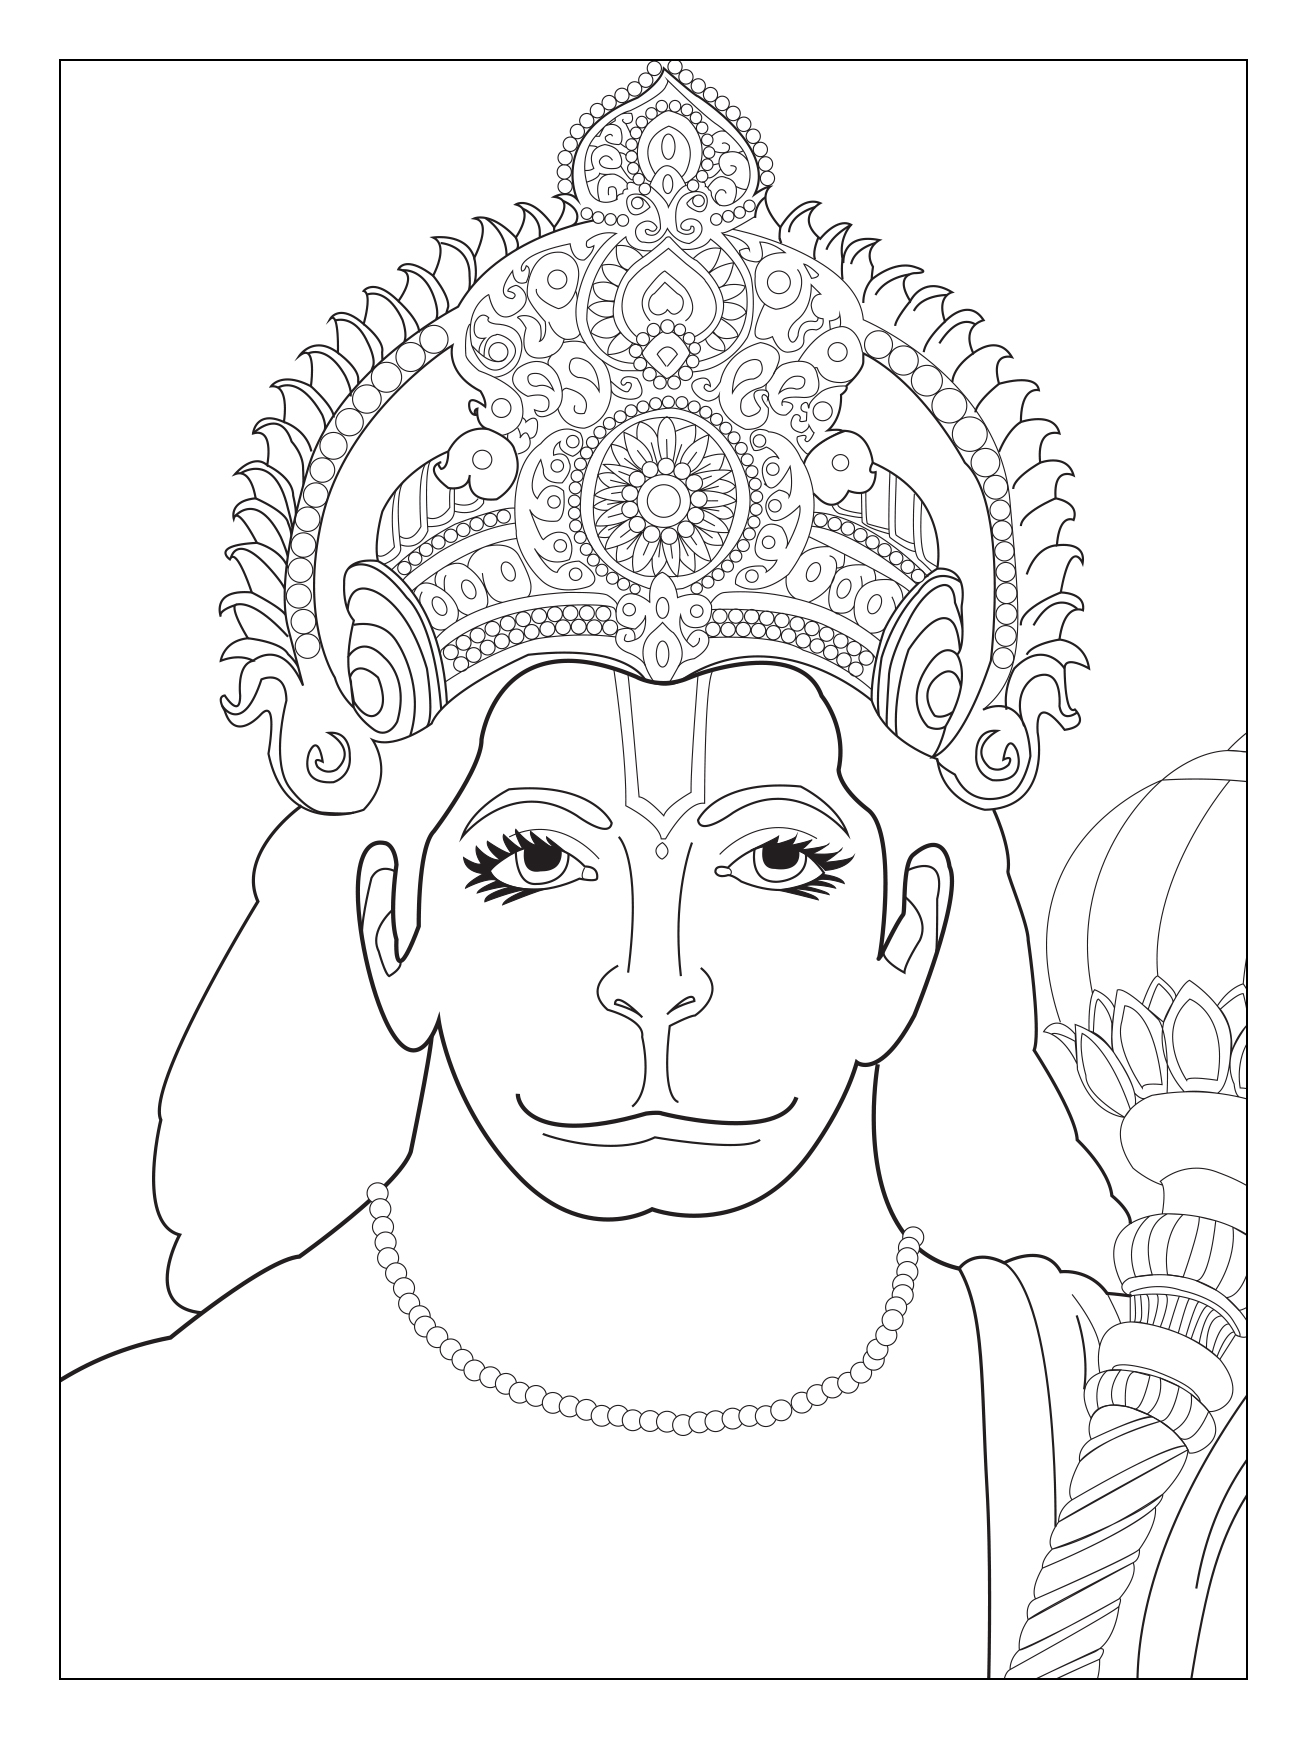 Hanuman chest the Divine Monkey India Bollywood Coloring pages